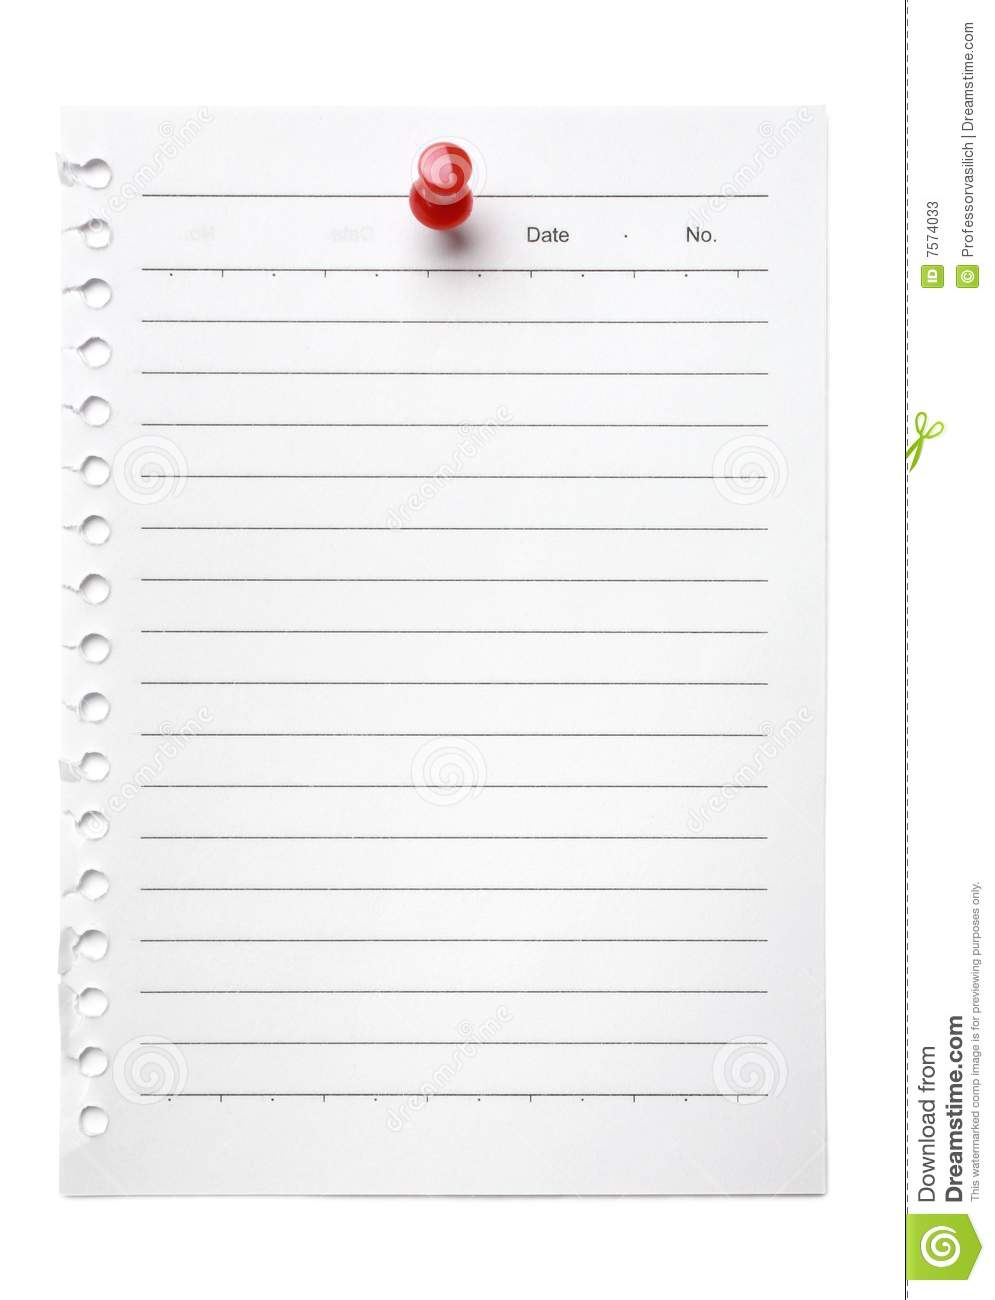 Blank note to do list stock photos image 7574033